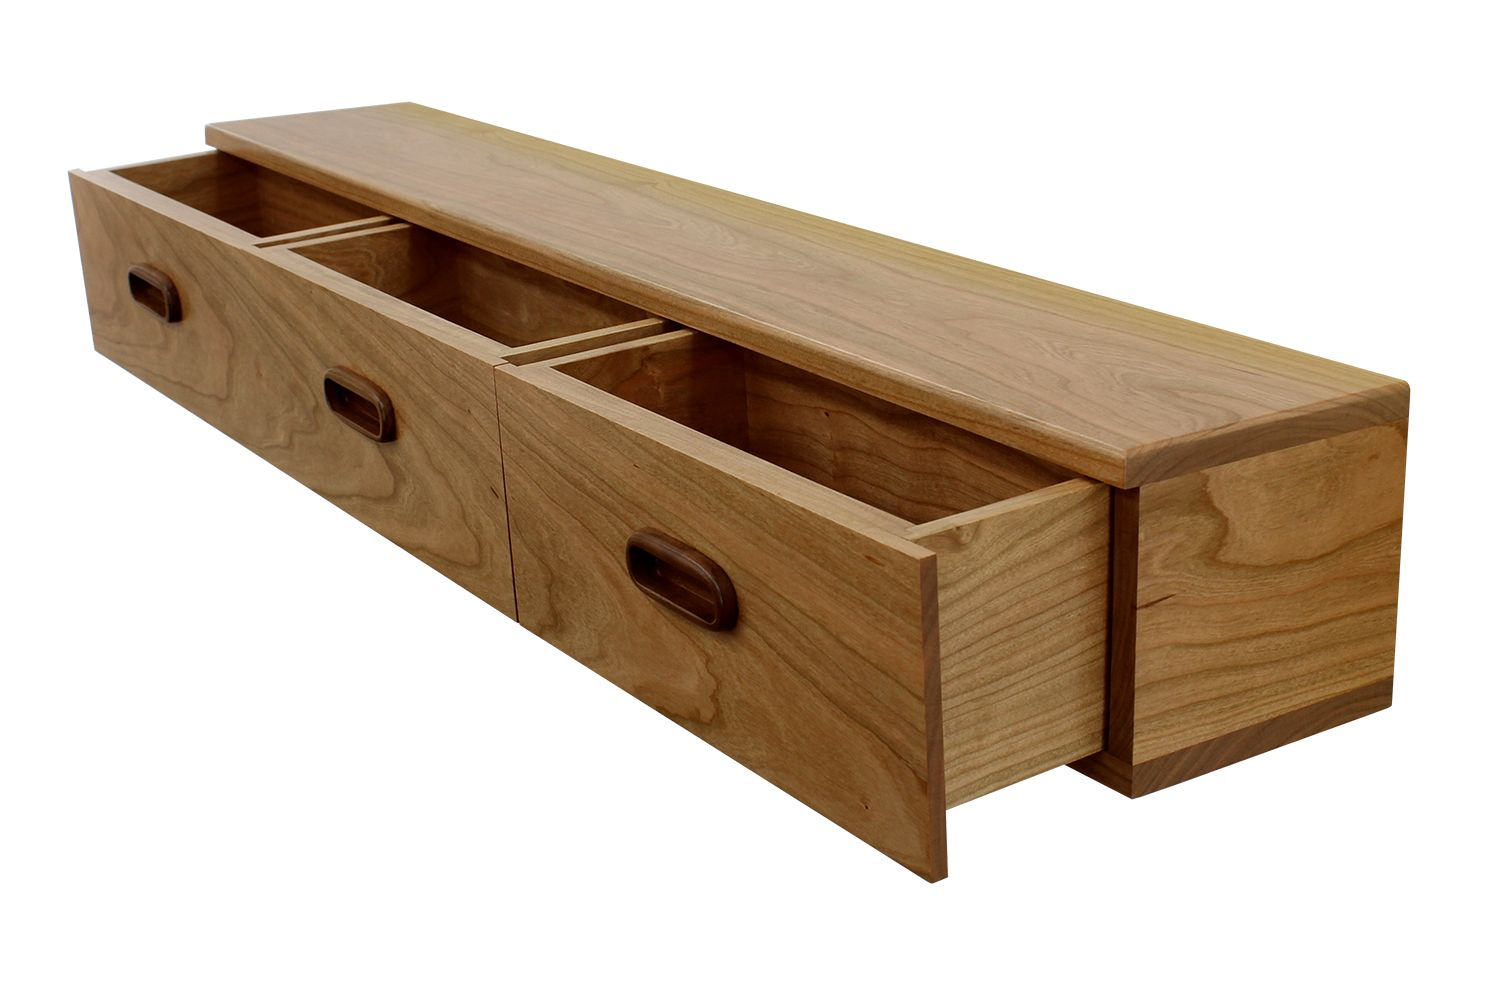 Fullsize Of Floating Shelf With Drawer